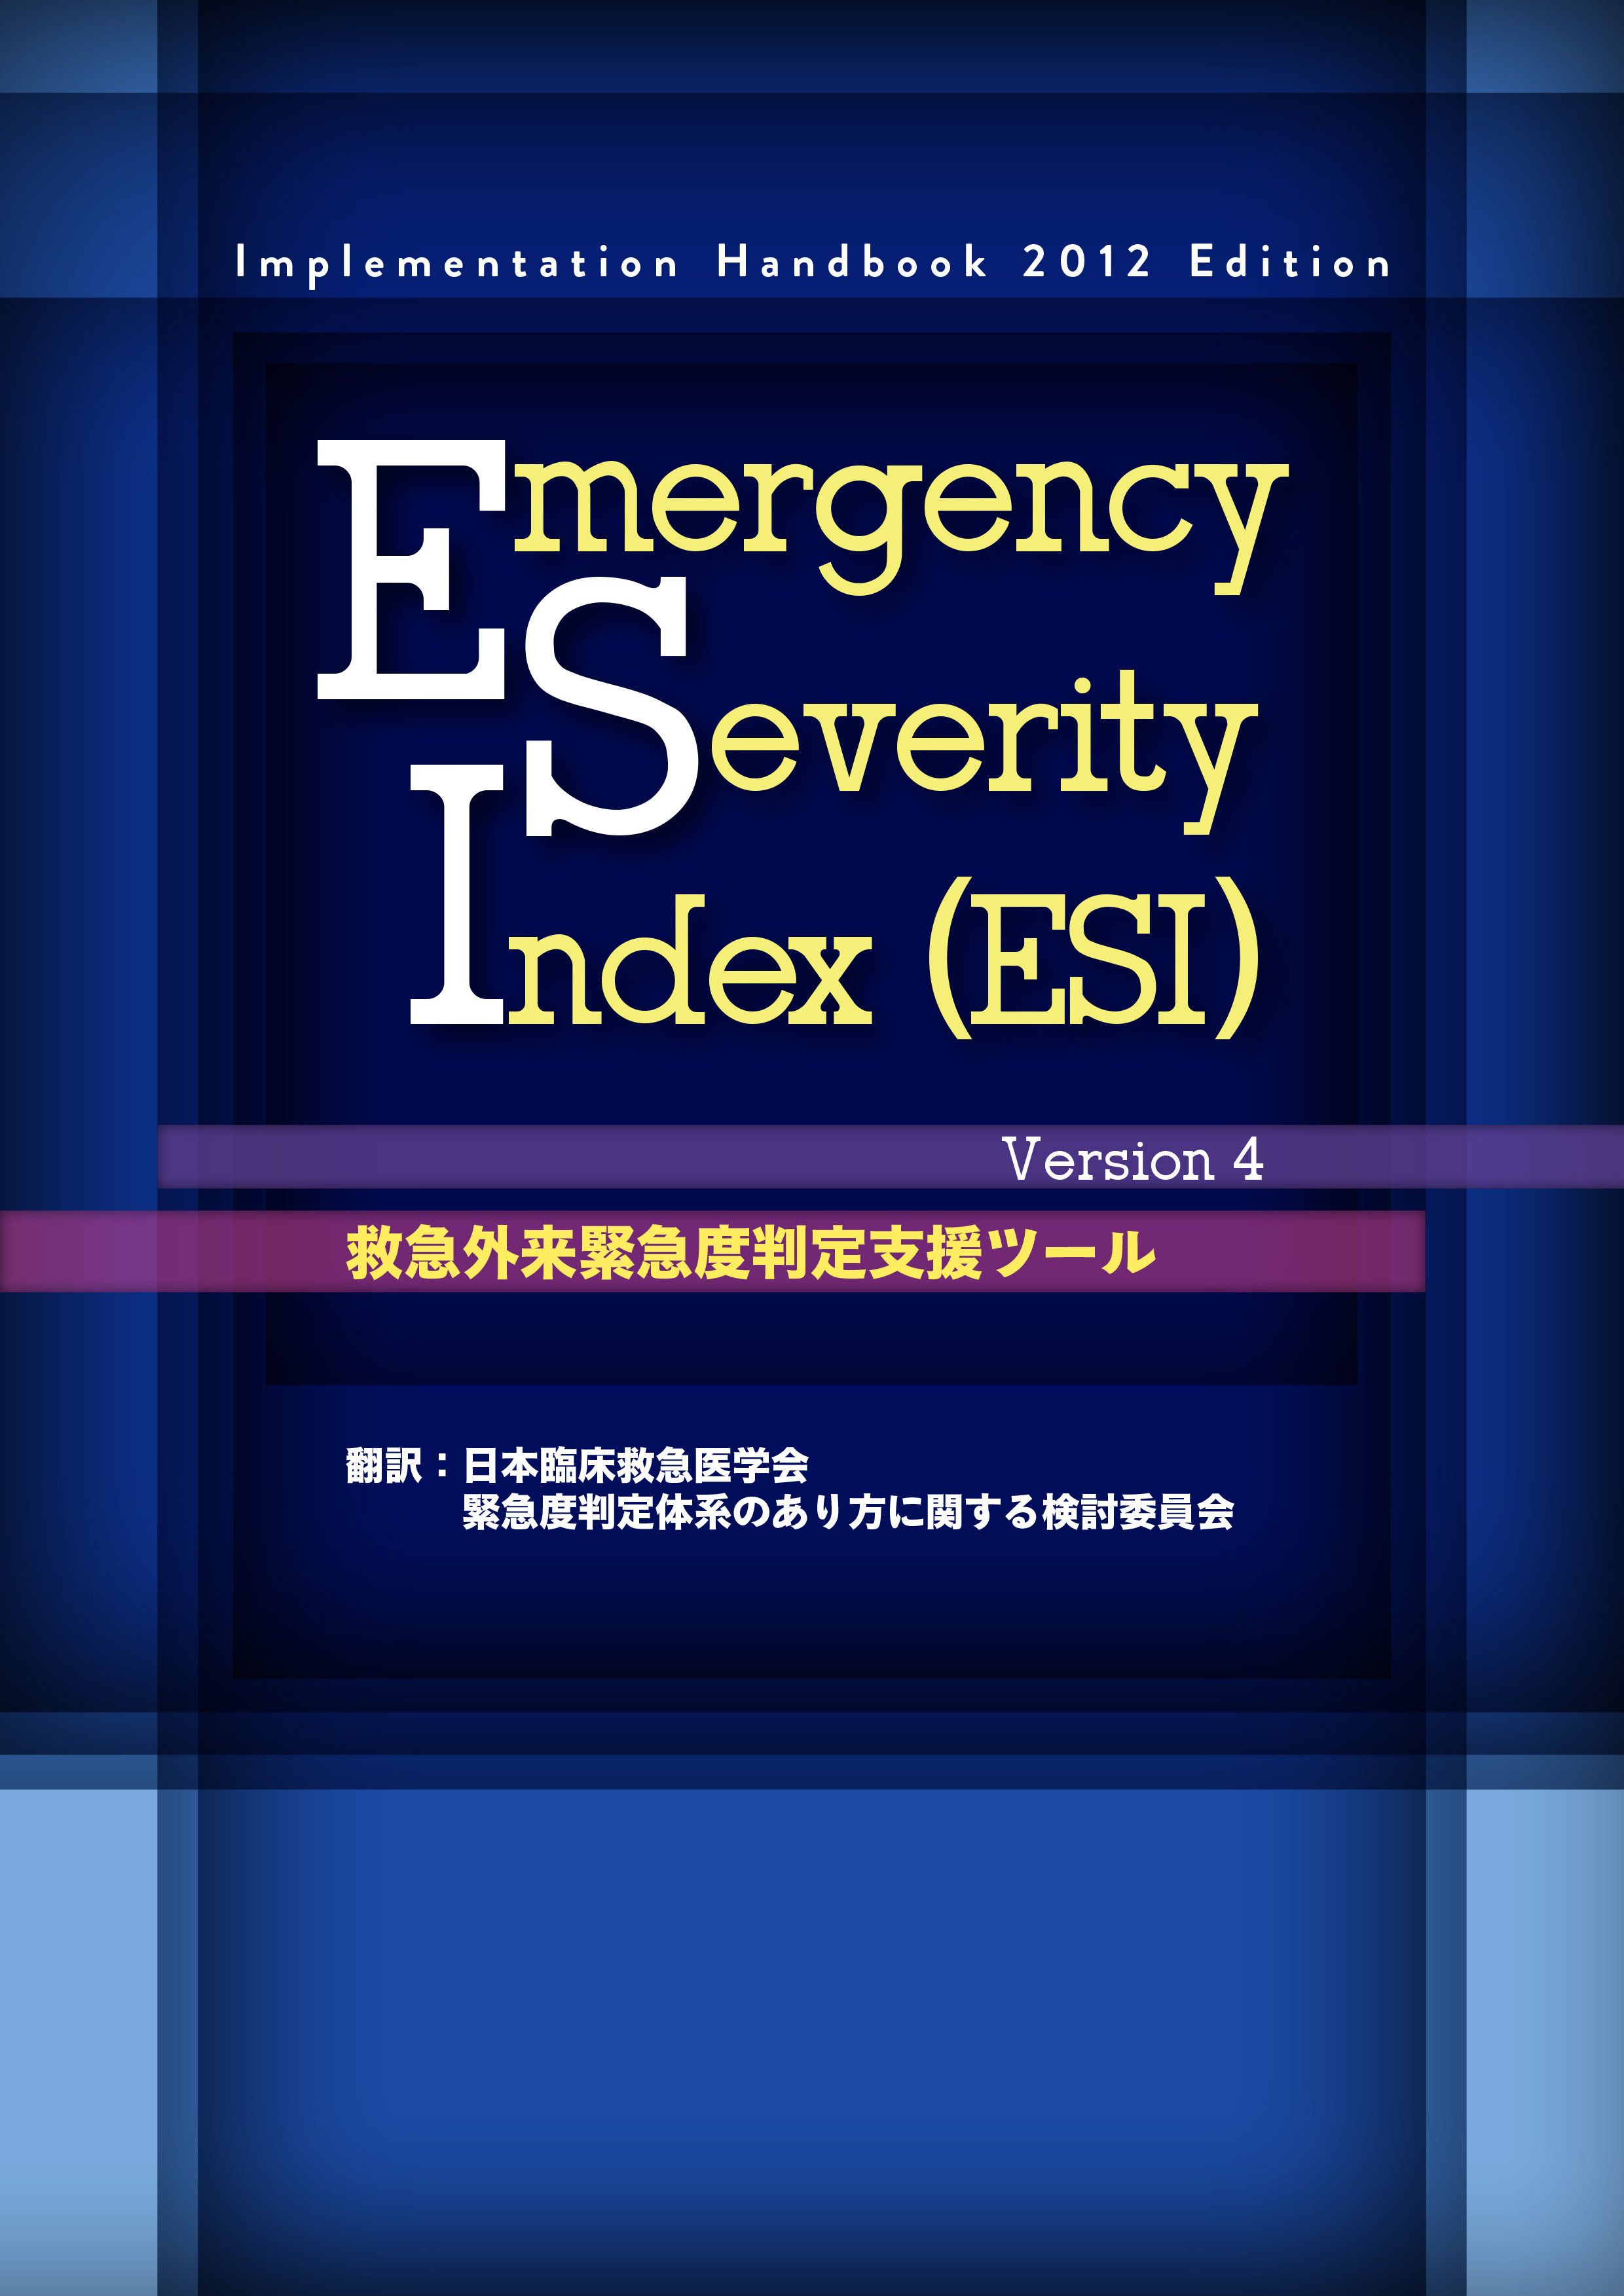 Emergency Severity Index (ESI) Version4